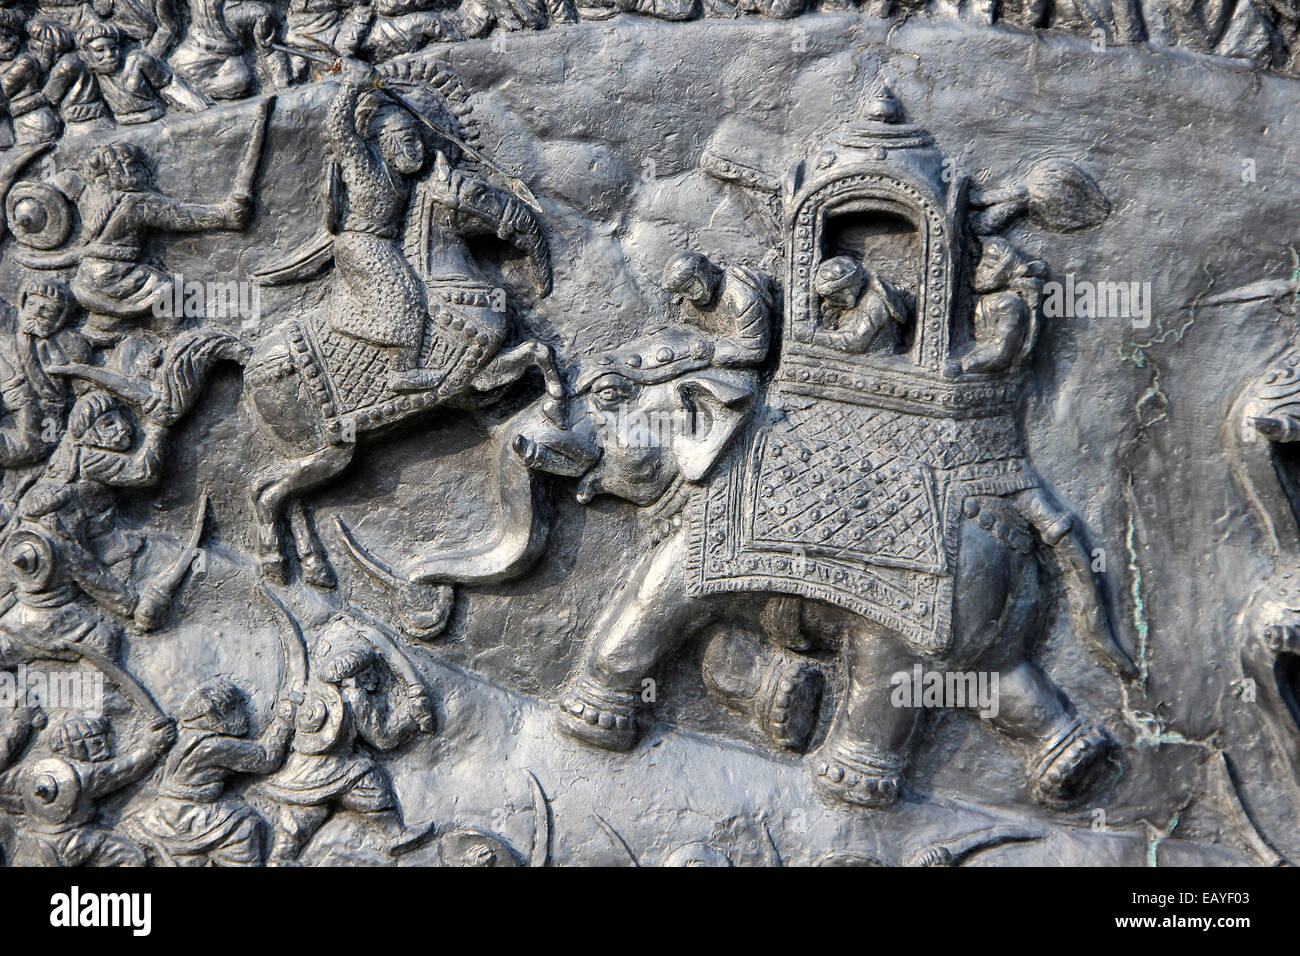 Close-up of bas-relief carving of Haldighat war scene at Pratap Smarak on Moti Magri Hill in Udaipur, Gujarat, India, - Stock Image